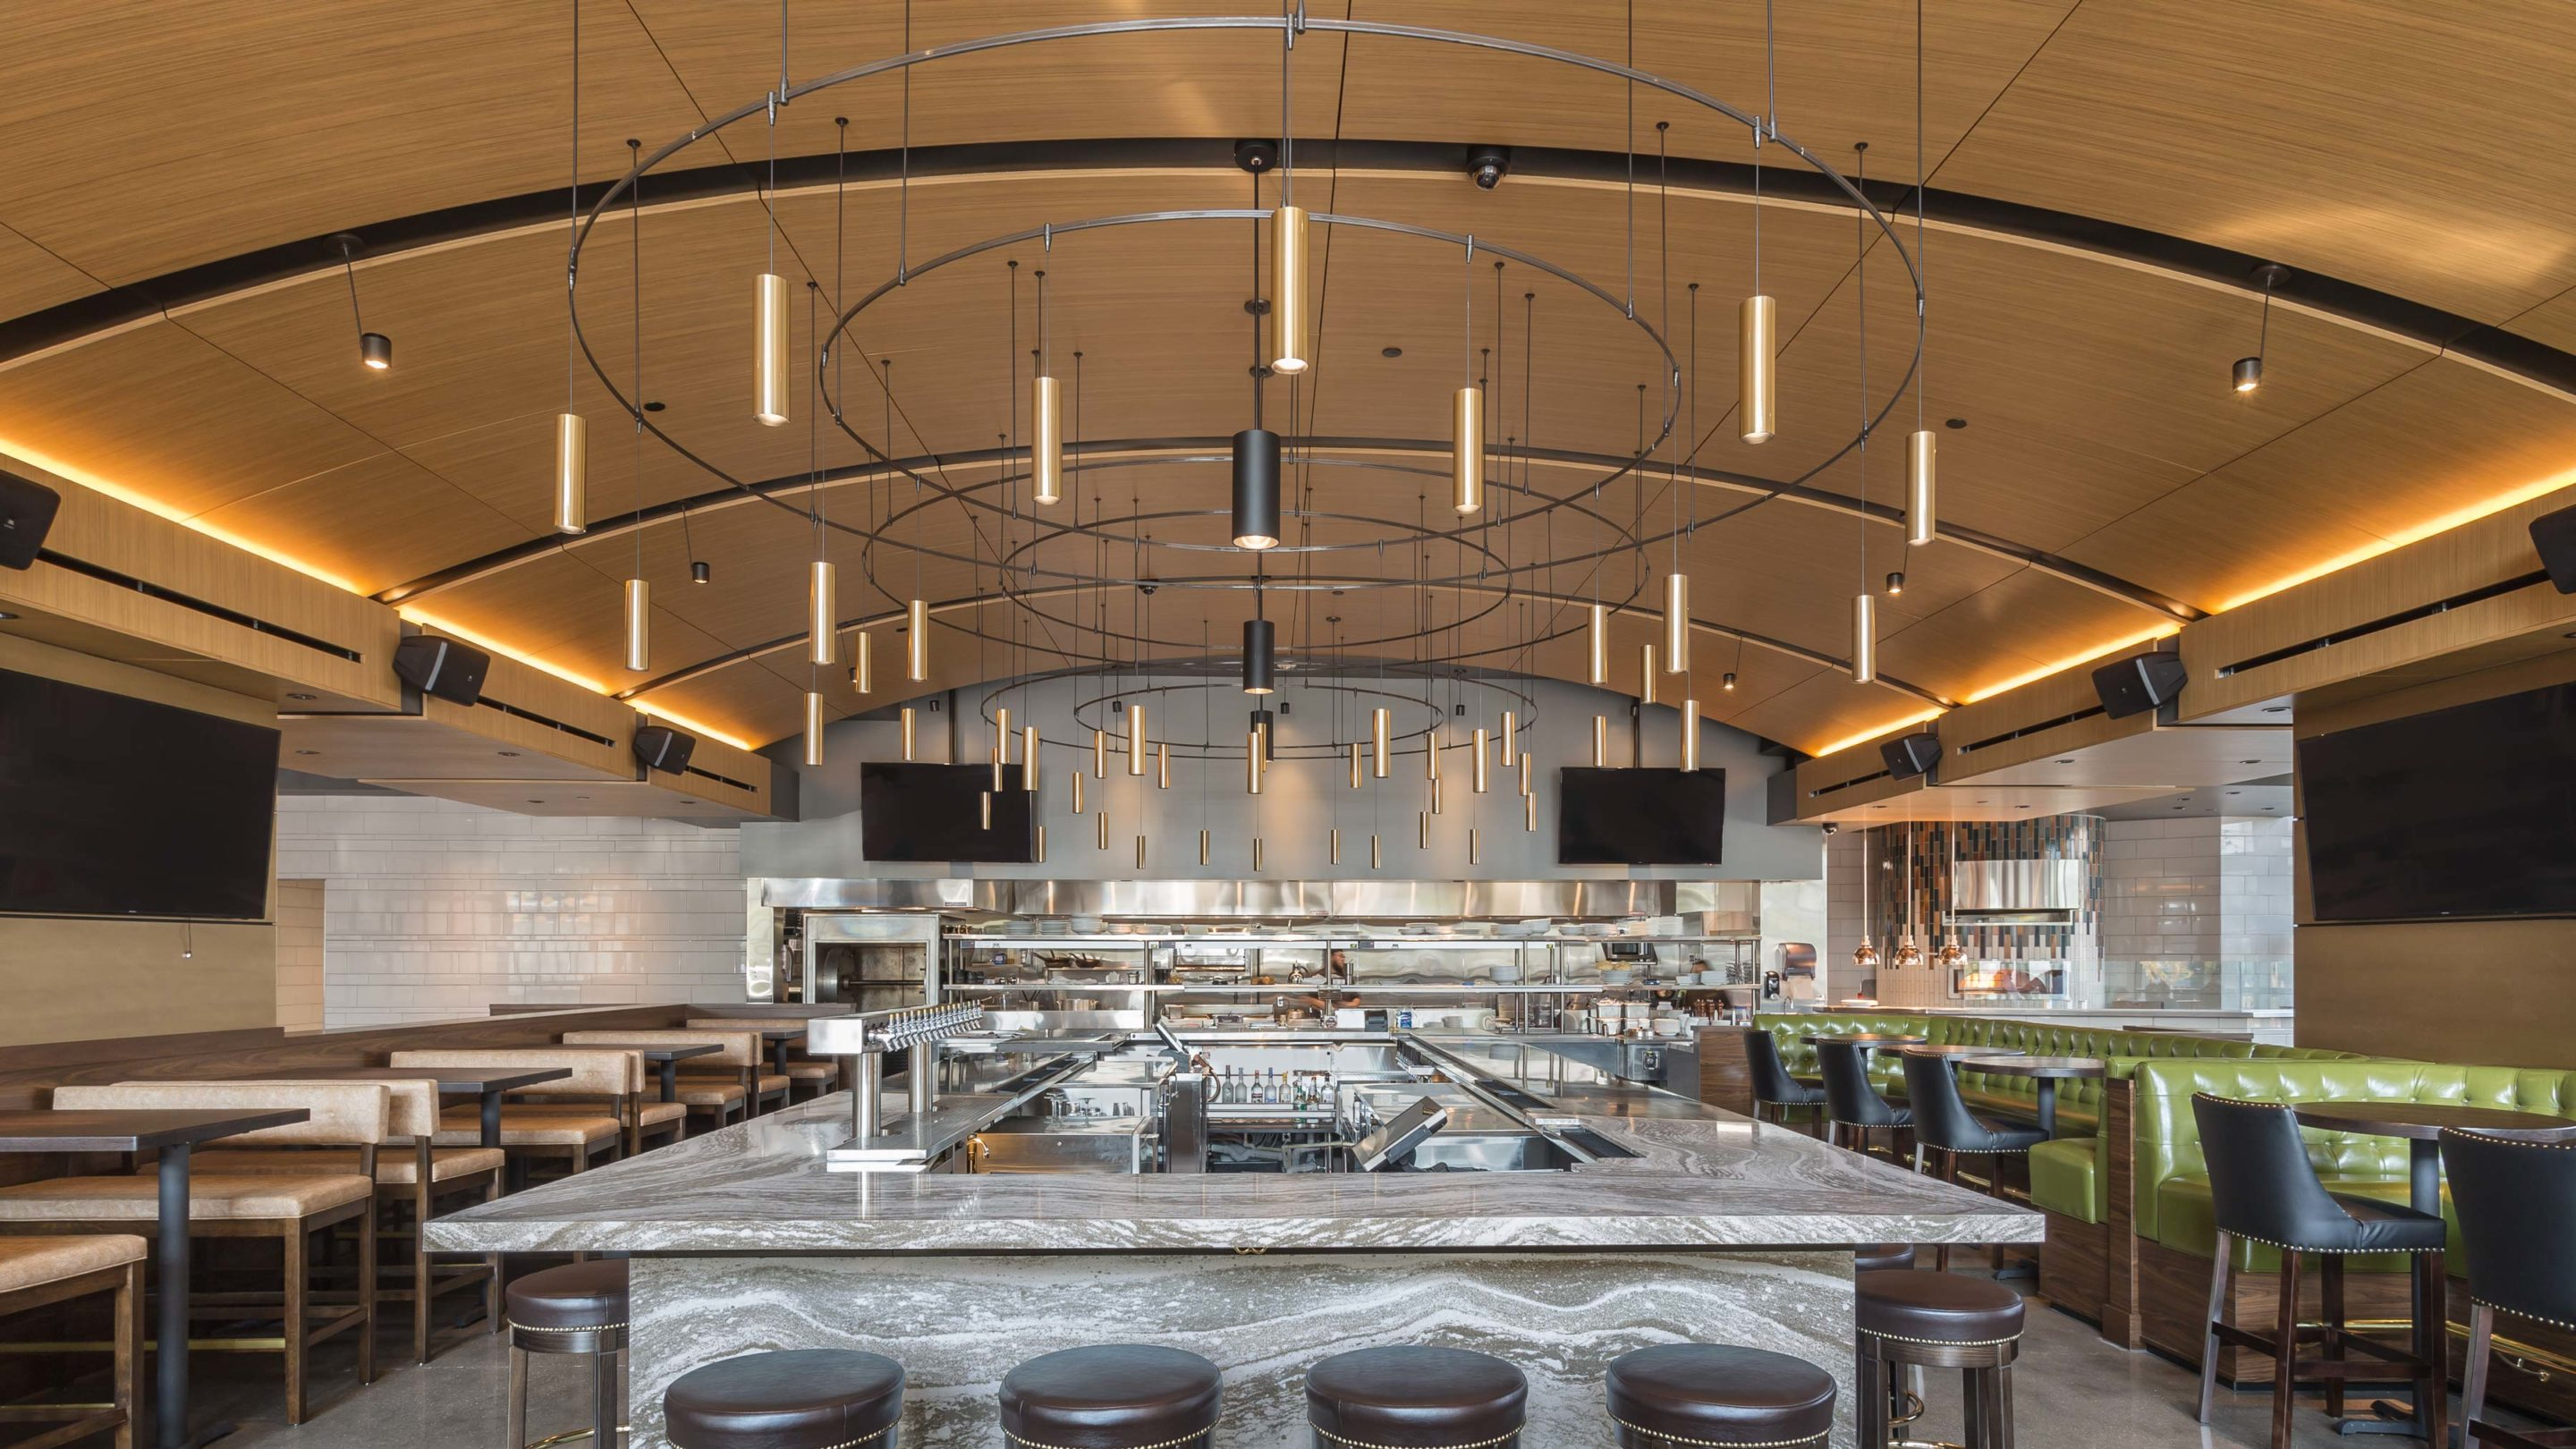 Hazelwood Food + Drink features SoundPly's Curved Acoustic Ceiling Panels.